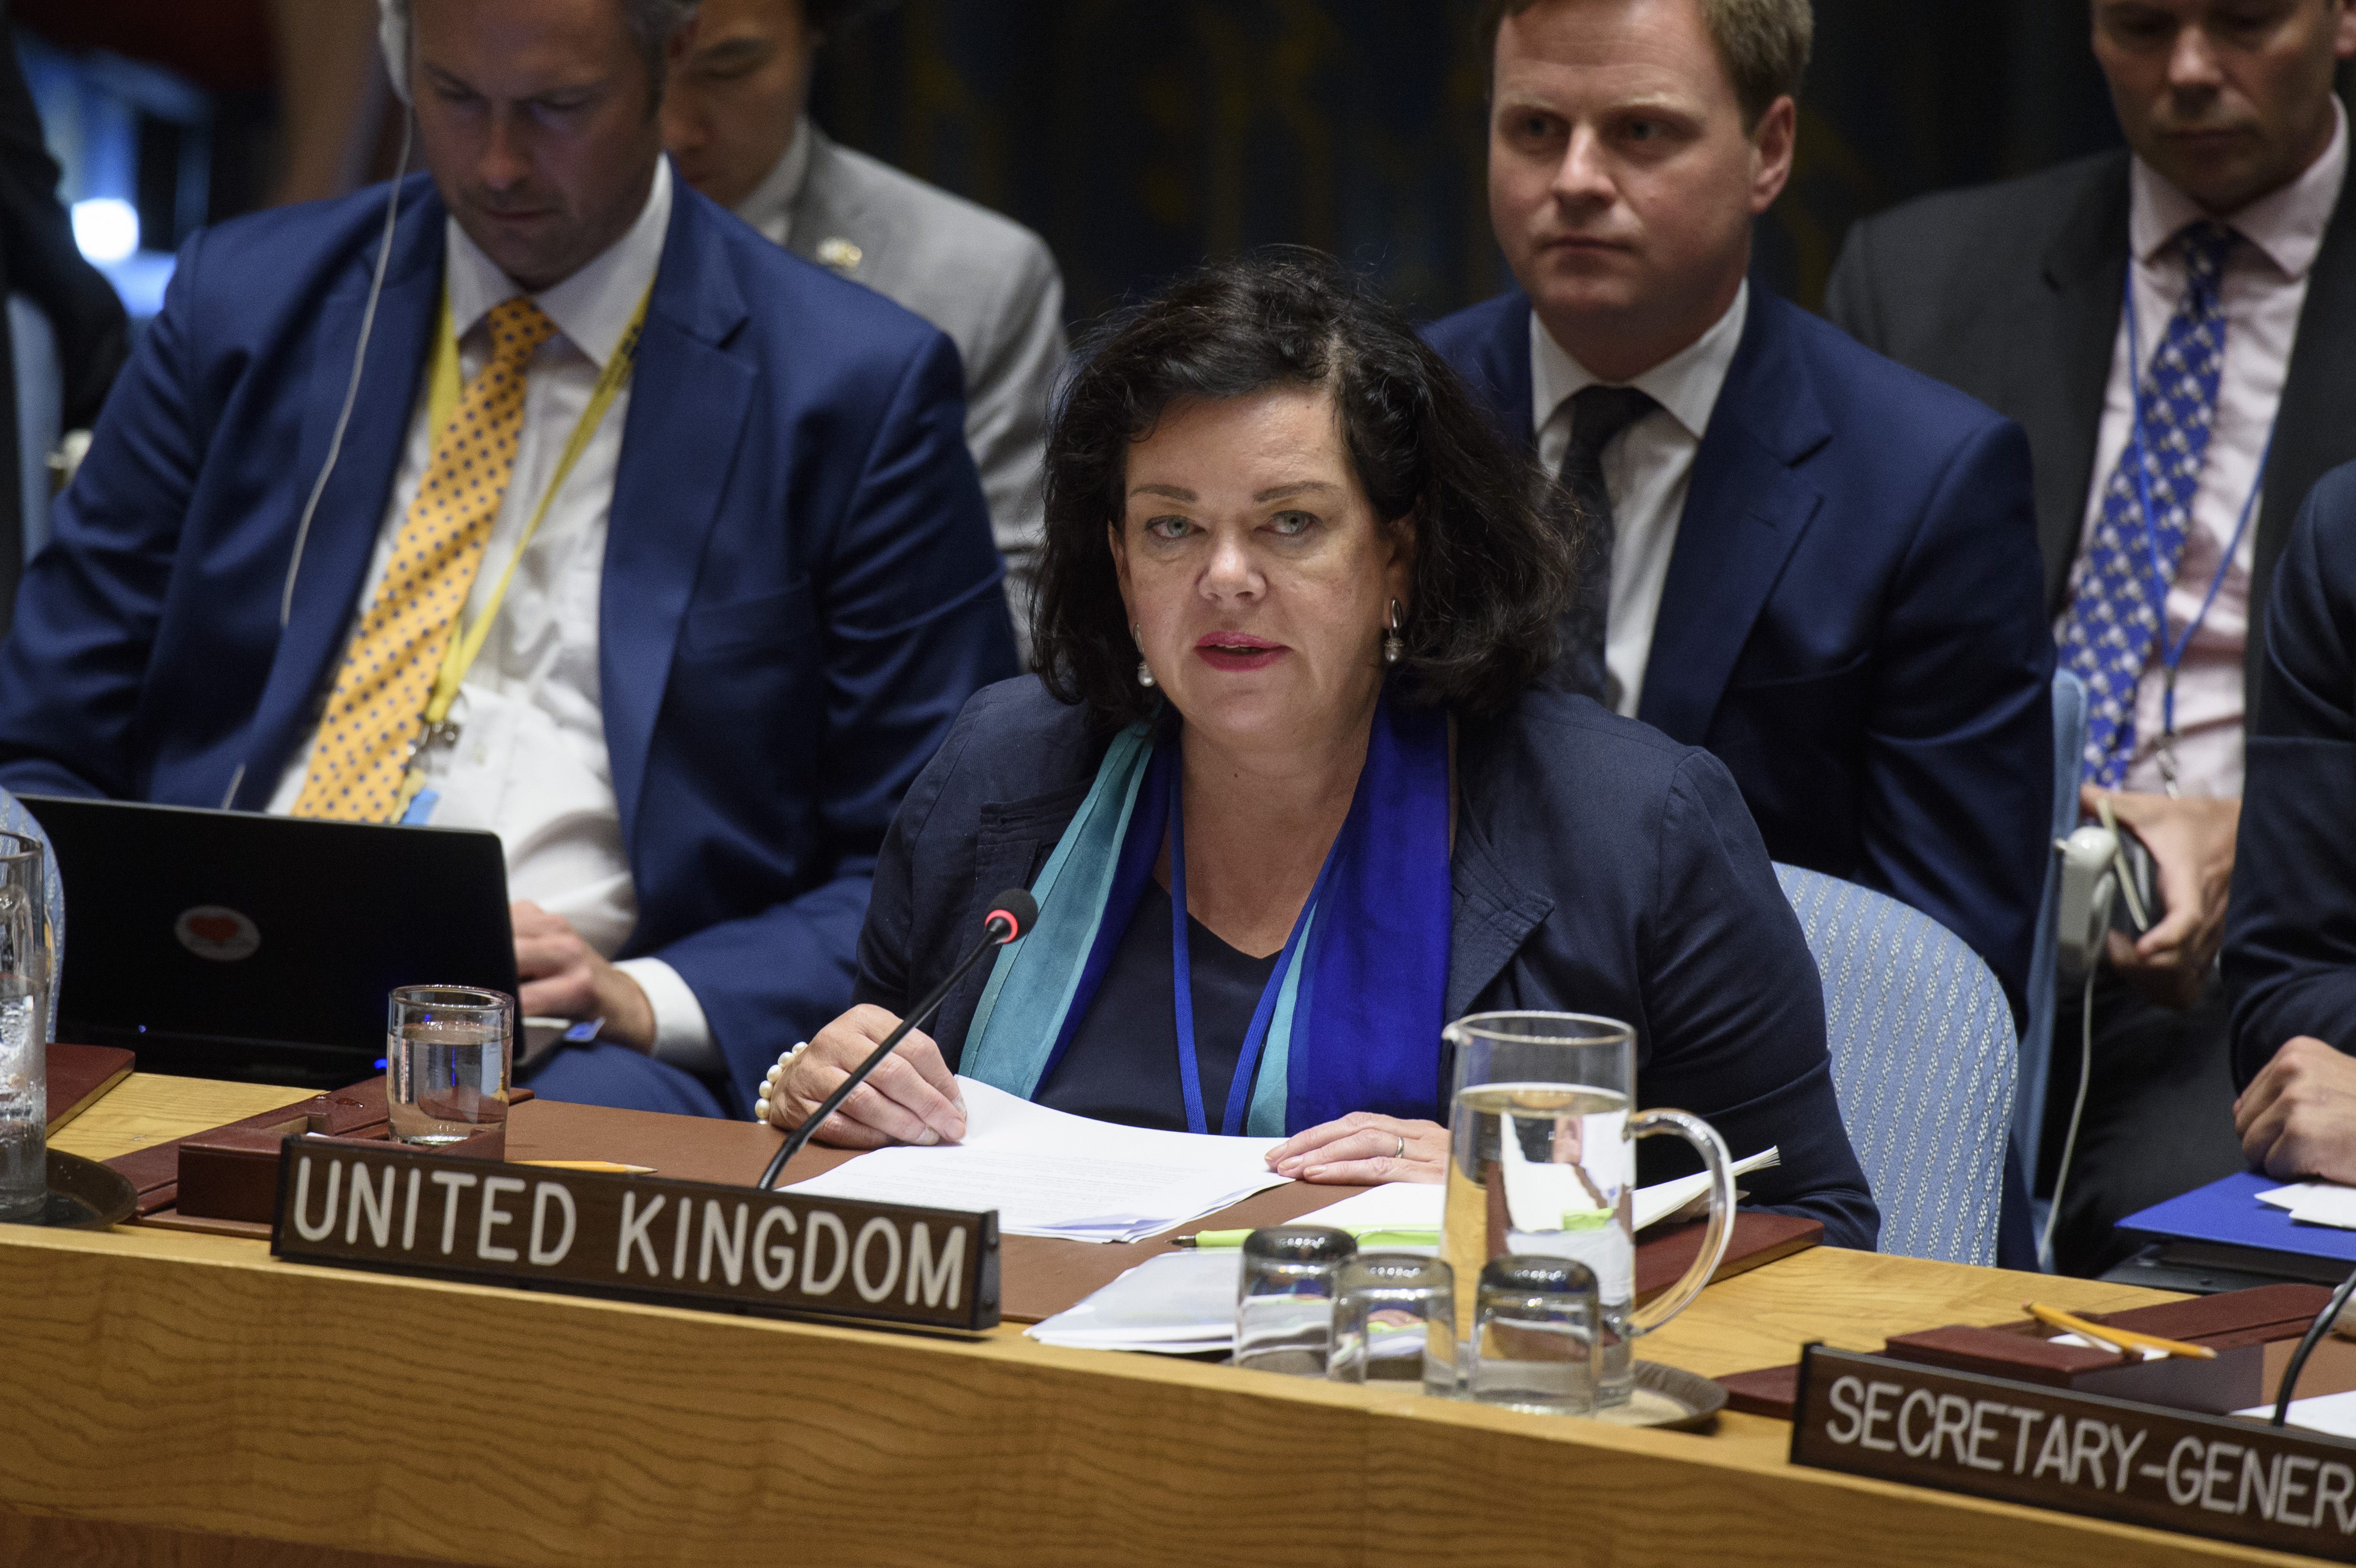 Karen Pierce, Permanent Representative of the United Kingdom to the UN, addresses the Security Council. Credit: UN Photo/Loey Felipe